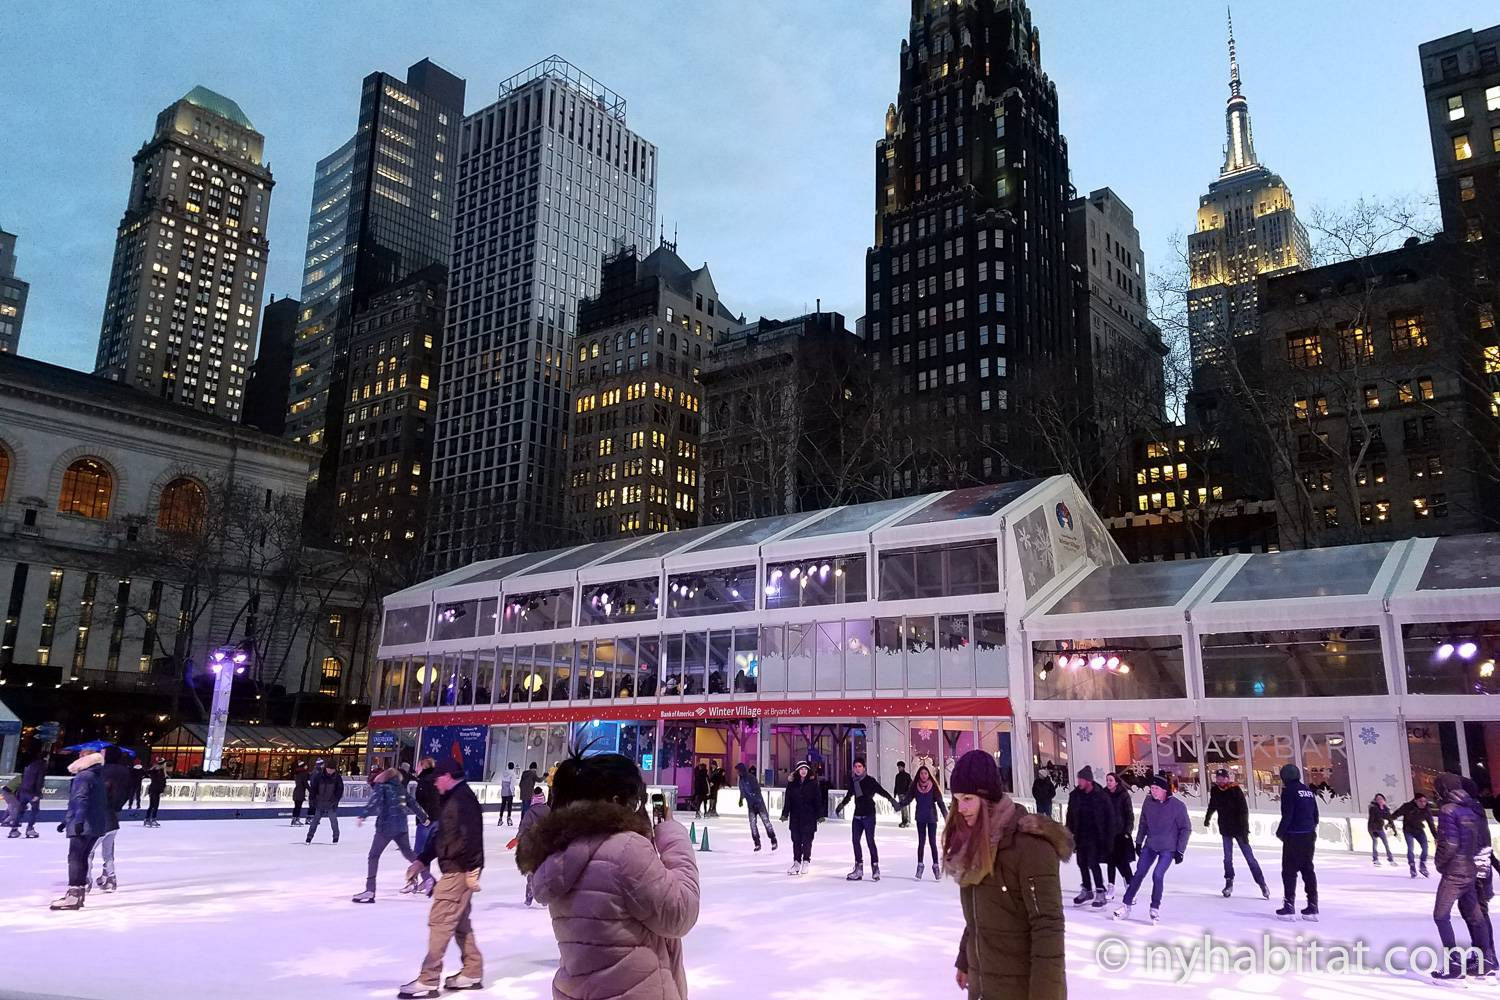 Image of ice skating rink at Bryant Park in the early evening